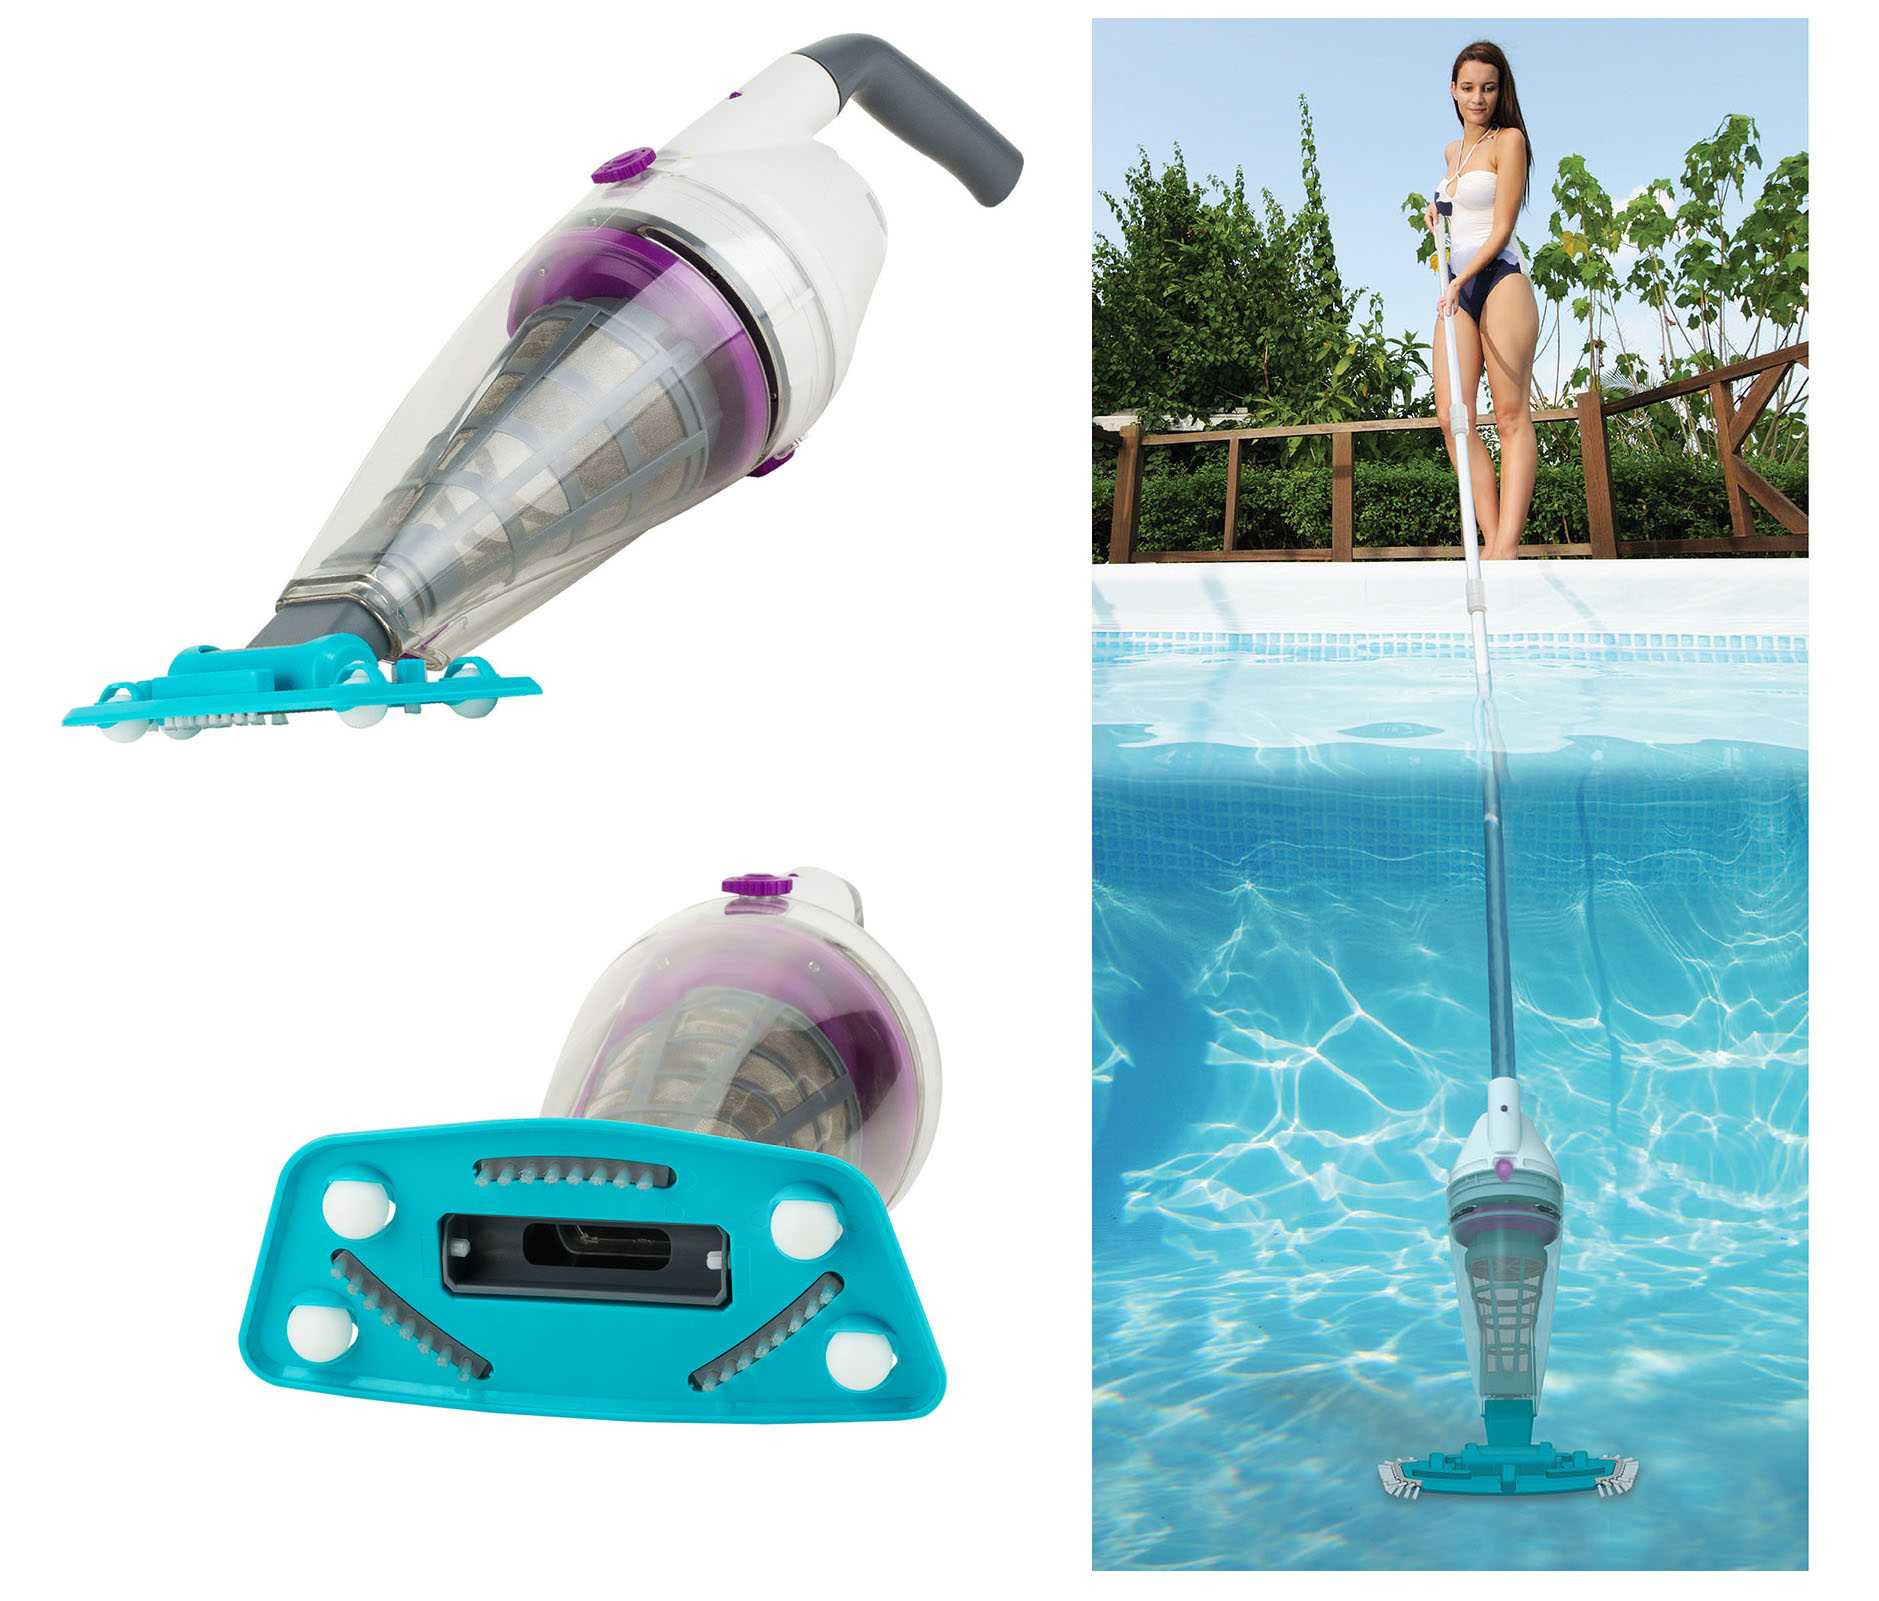 Telsa 50 Battery Vacuum Pool Cleaner avec Aspirateur Piscine Batterie